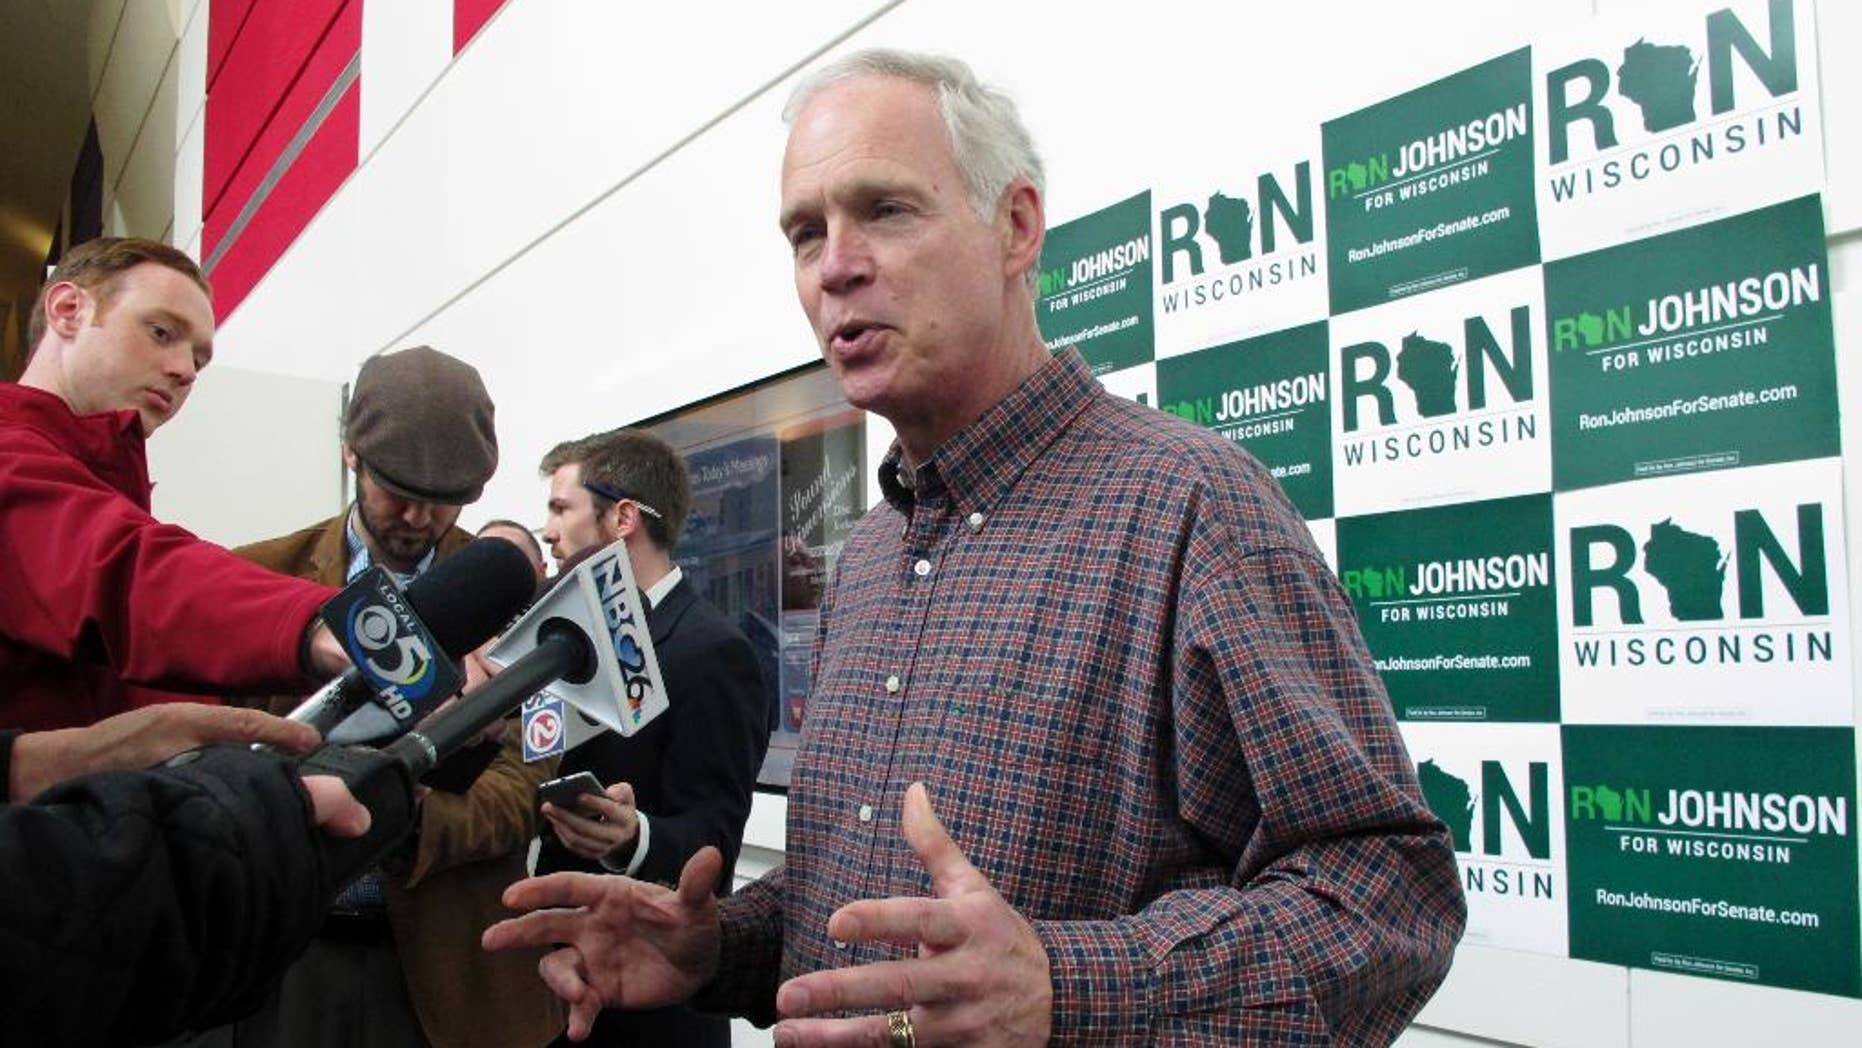 U.S. Sen. Ron Johnson, R-Wis., speaks with reporters Friday, May 13, 2016, in Green Bay, Wis., ahead of the Wisconsin Republican Party convention. Johnson says he is sympathetic with Donald Trump as the presumptive Republican presidential nominee tries to get smart on policy and win over fellow Republicans. (AP Photo/Scott Bauer)